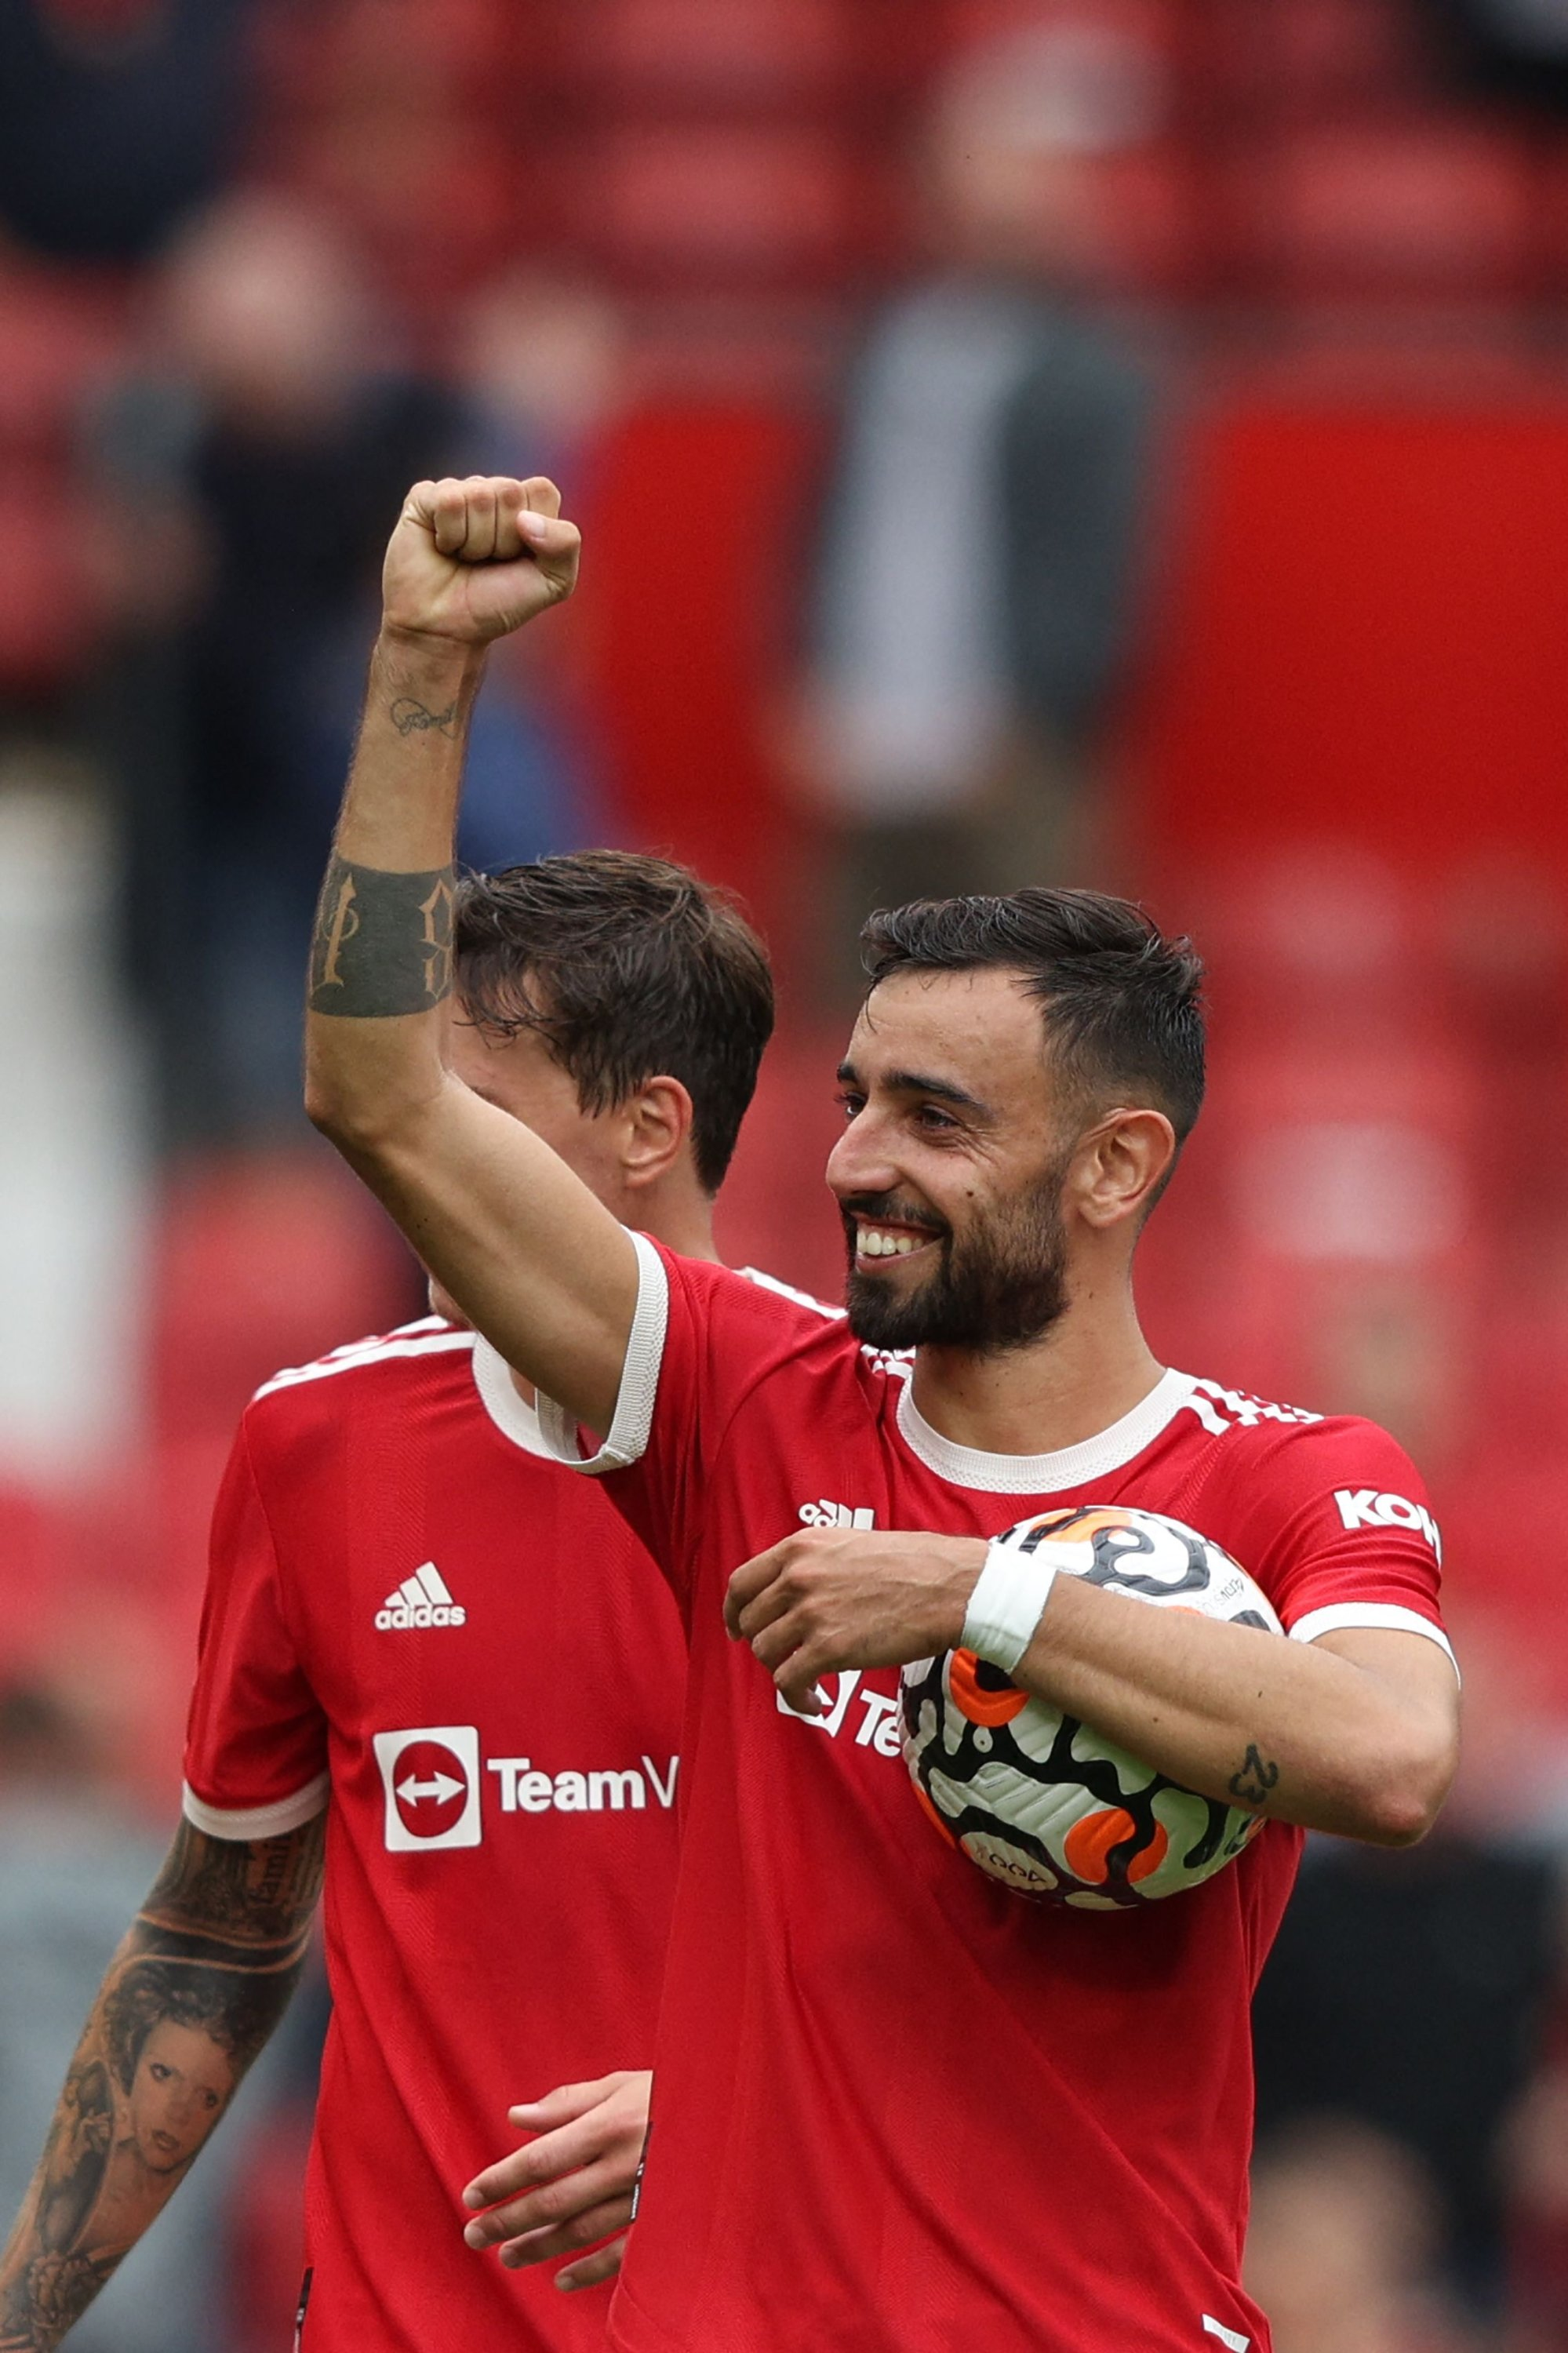 Manchester United's Bruno Fernandes holds the match ball at the final whistle in a Premier League match against Leeds United at Old Trafford in Manchester, England, Aug. 14, 2021. (AFP Photo)